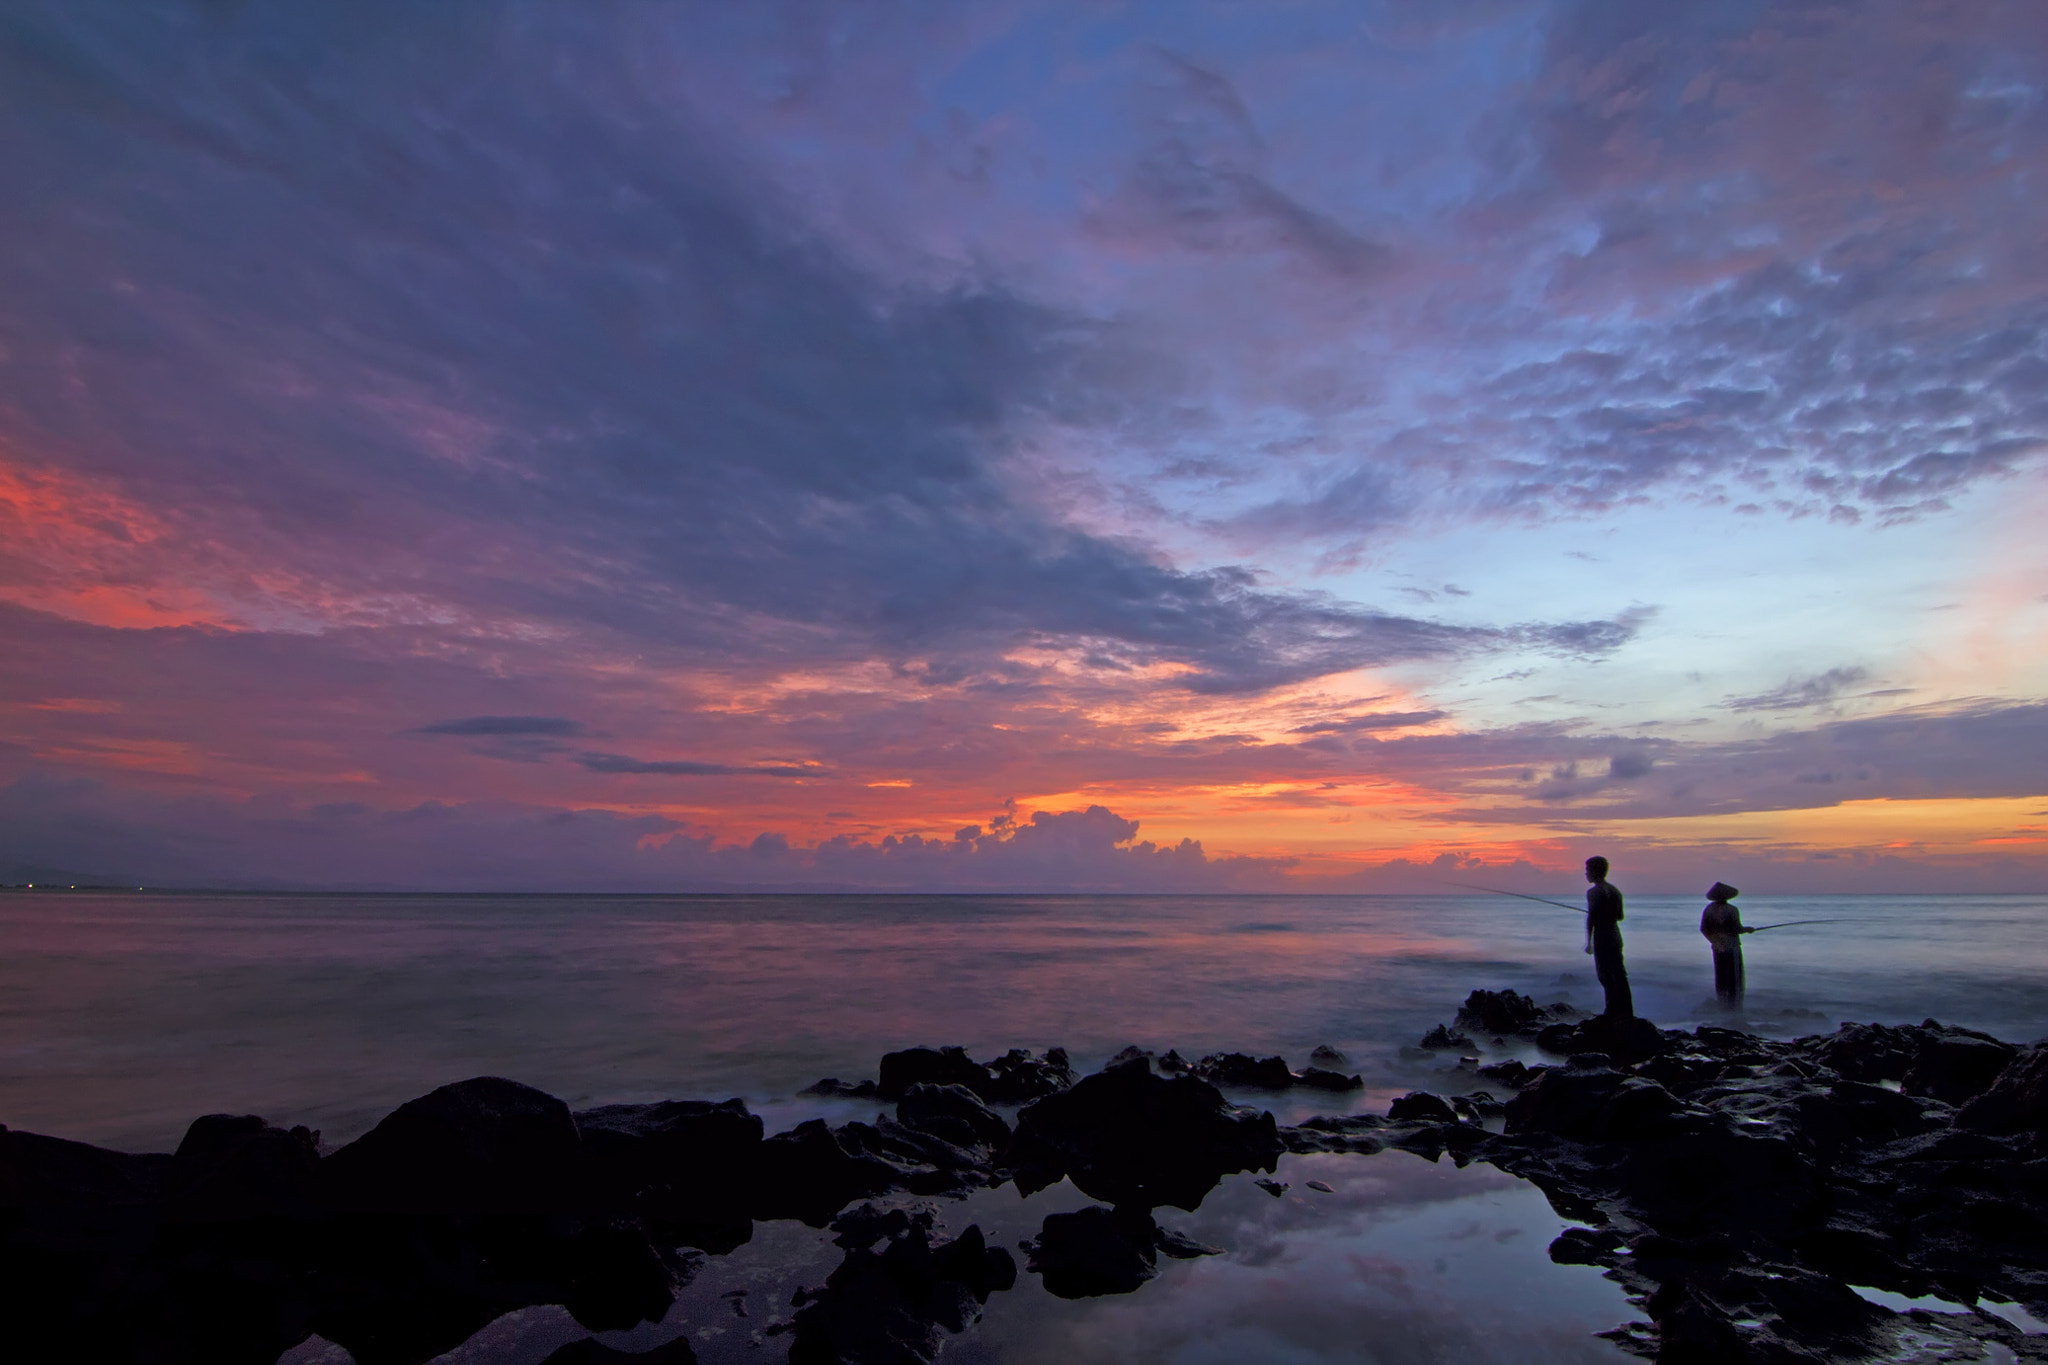 Photograph Fishing Time #3 by Eep Ependi on 500px